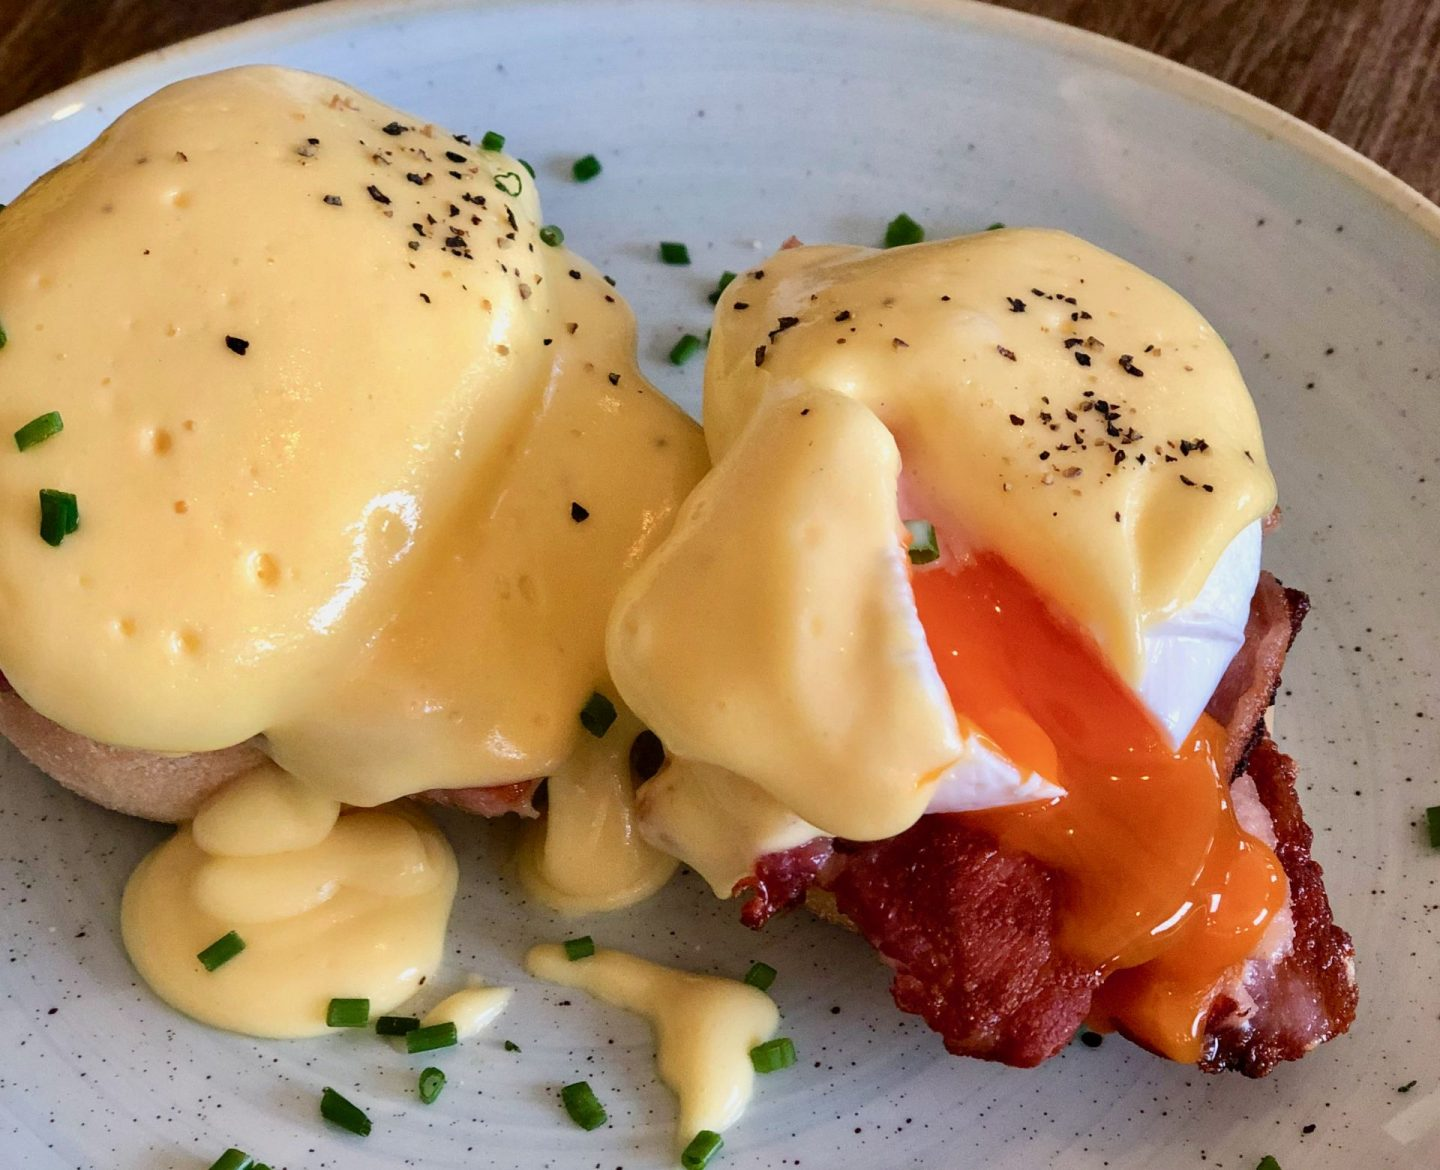 Close up of Eggs benedict, with the poached egg freshly burst and bright orange yolk spilling out